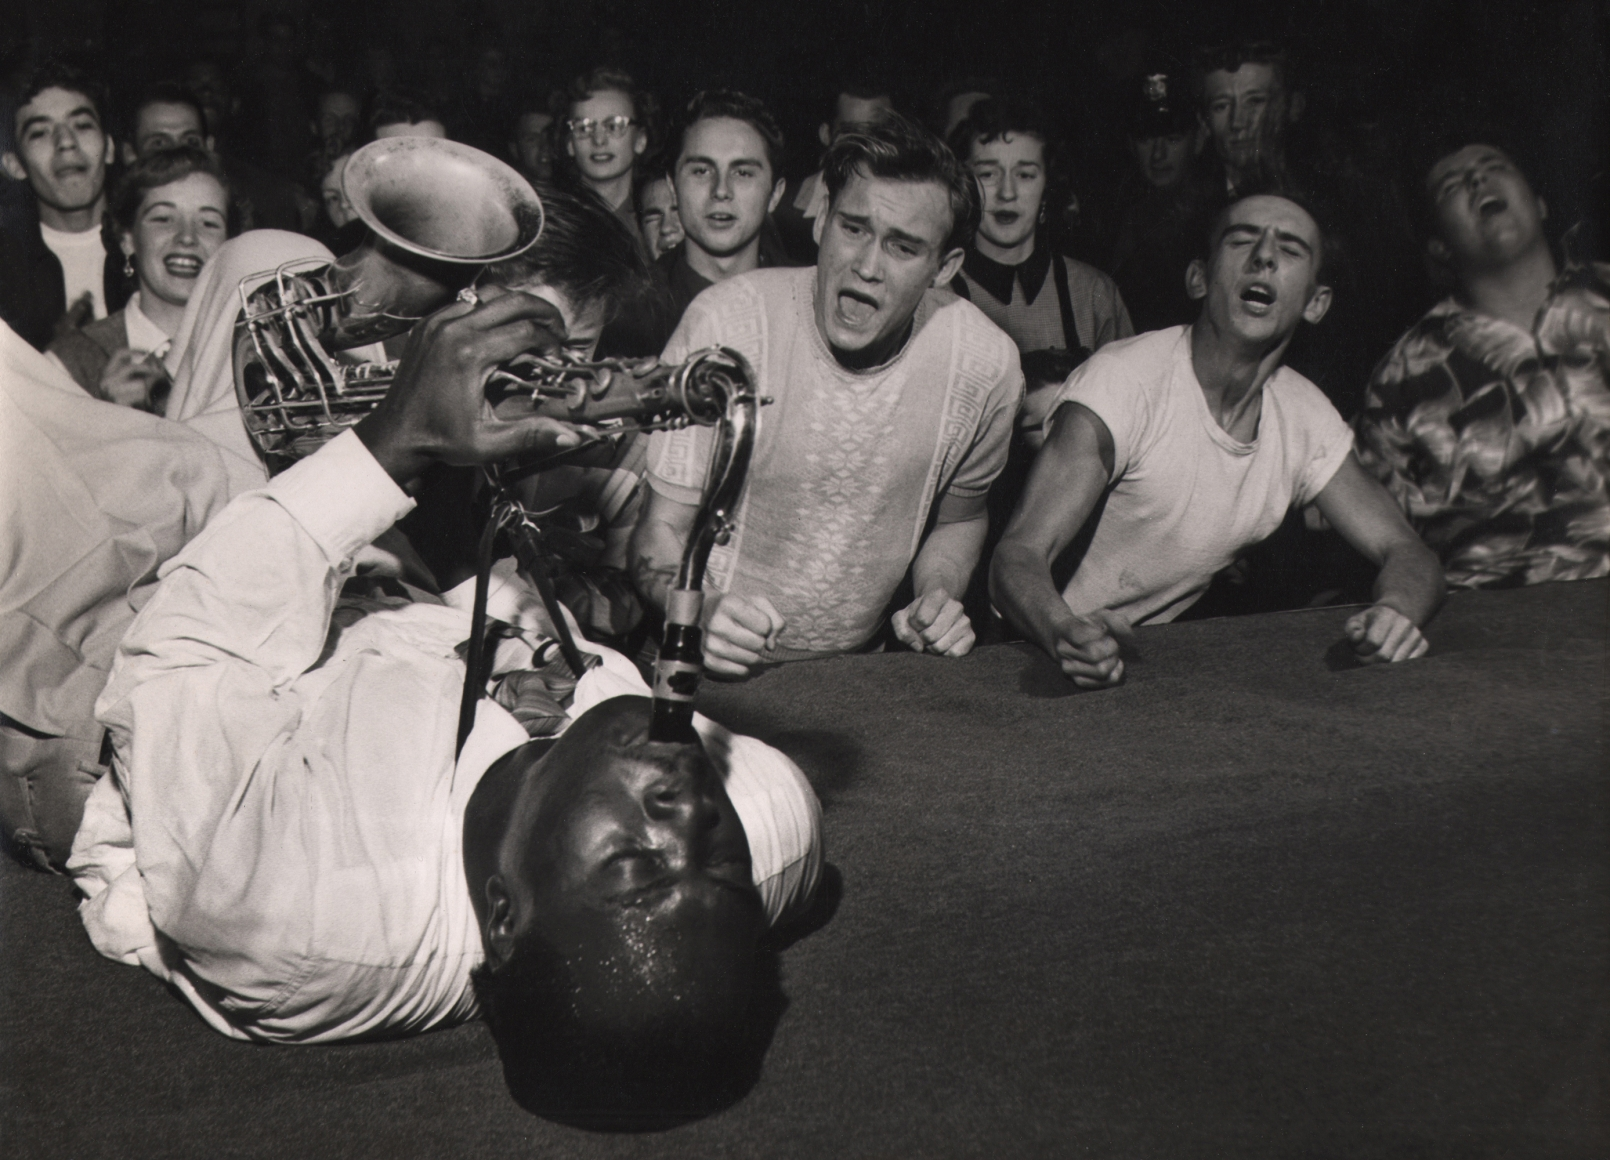 Bob Willoughby, Big Jay McNeely, 1951. Subject lays on stage mid-performance, playing the saxophone while emotional fans look on.